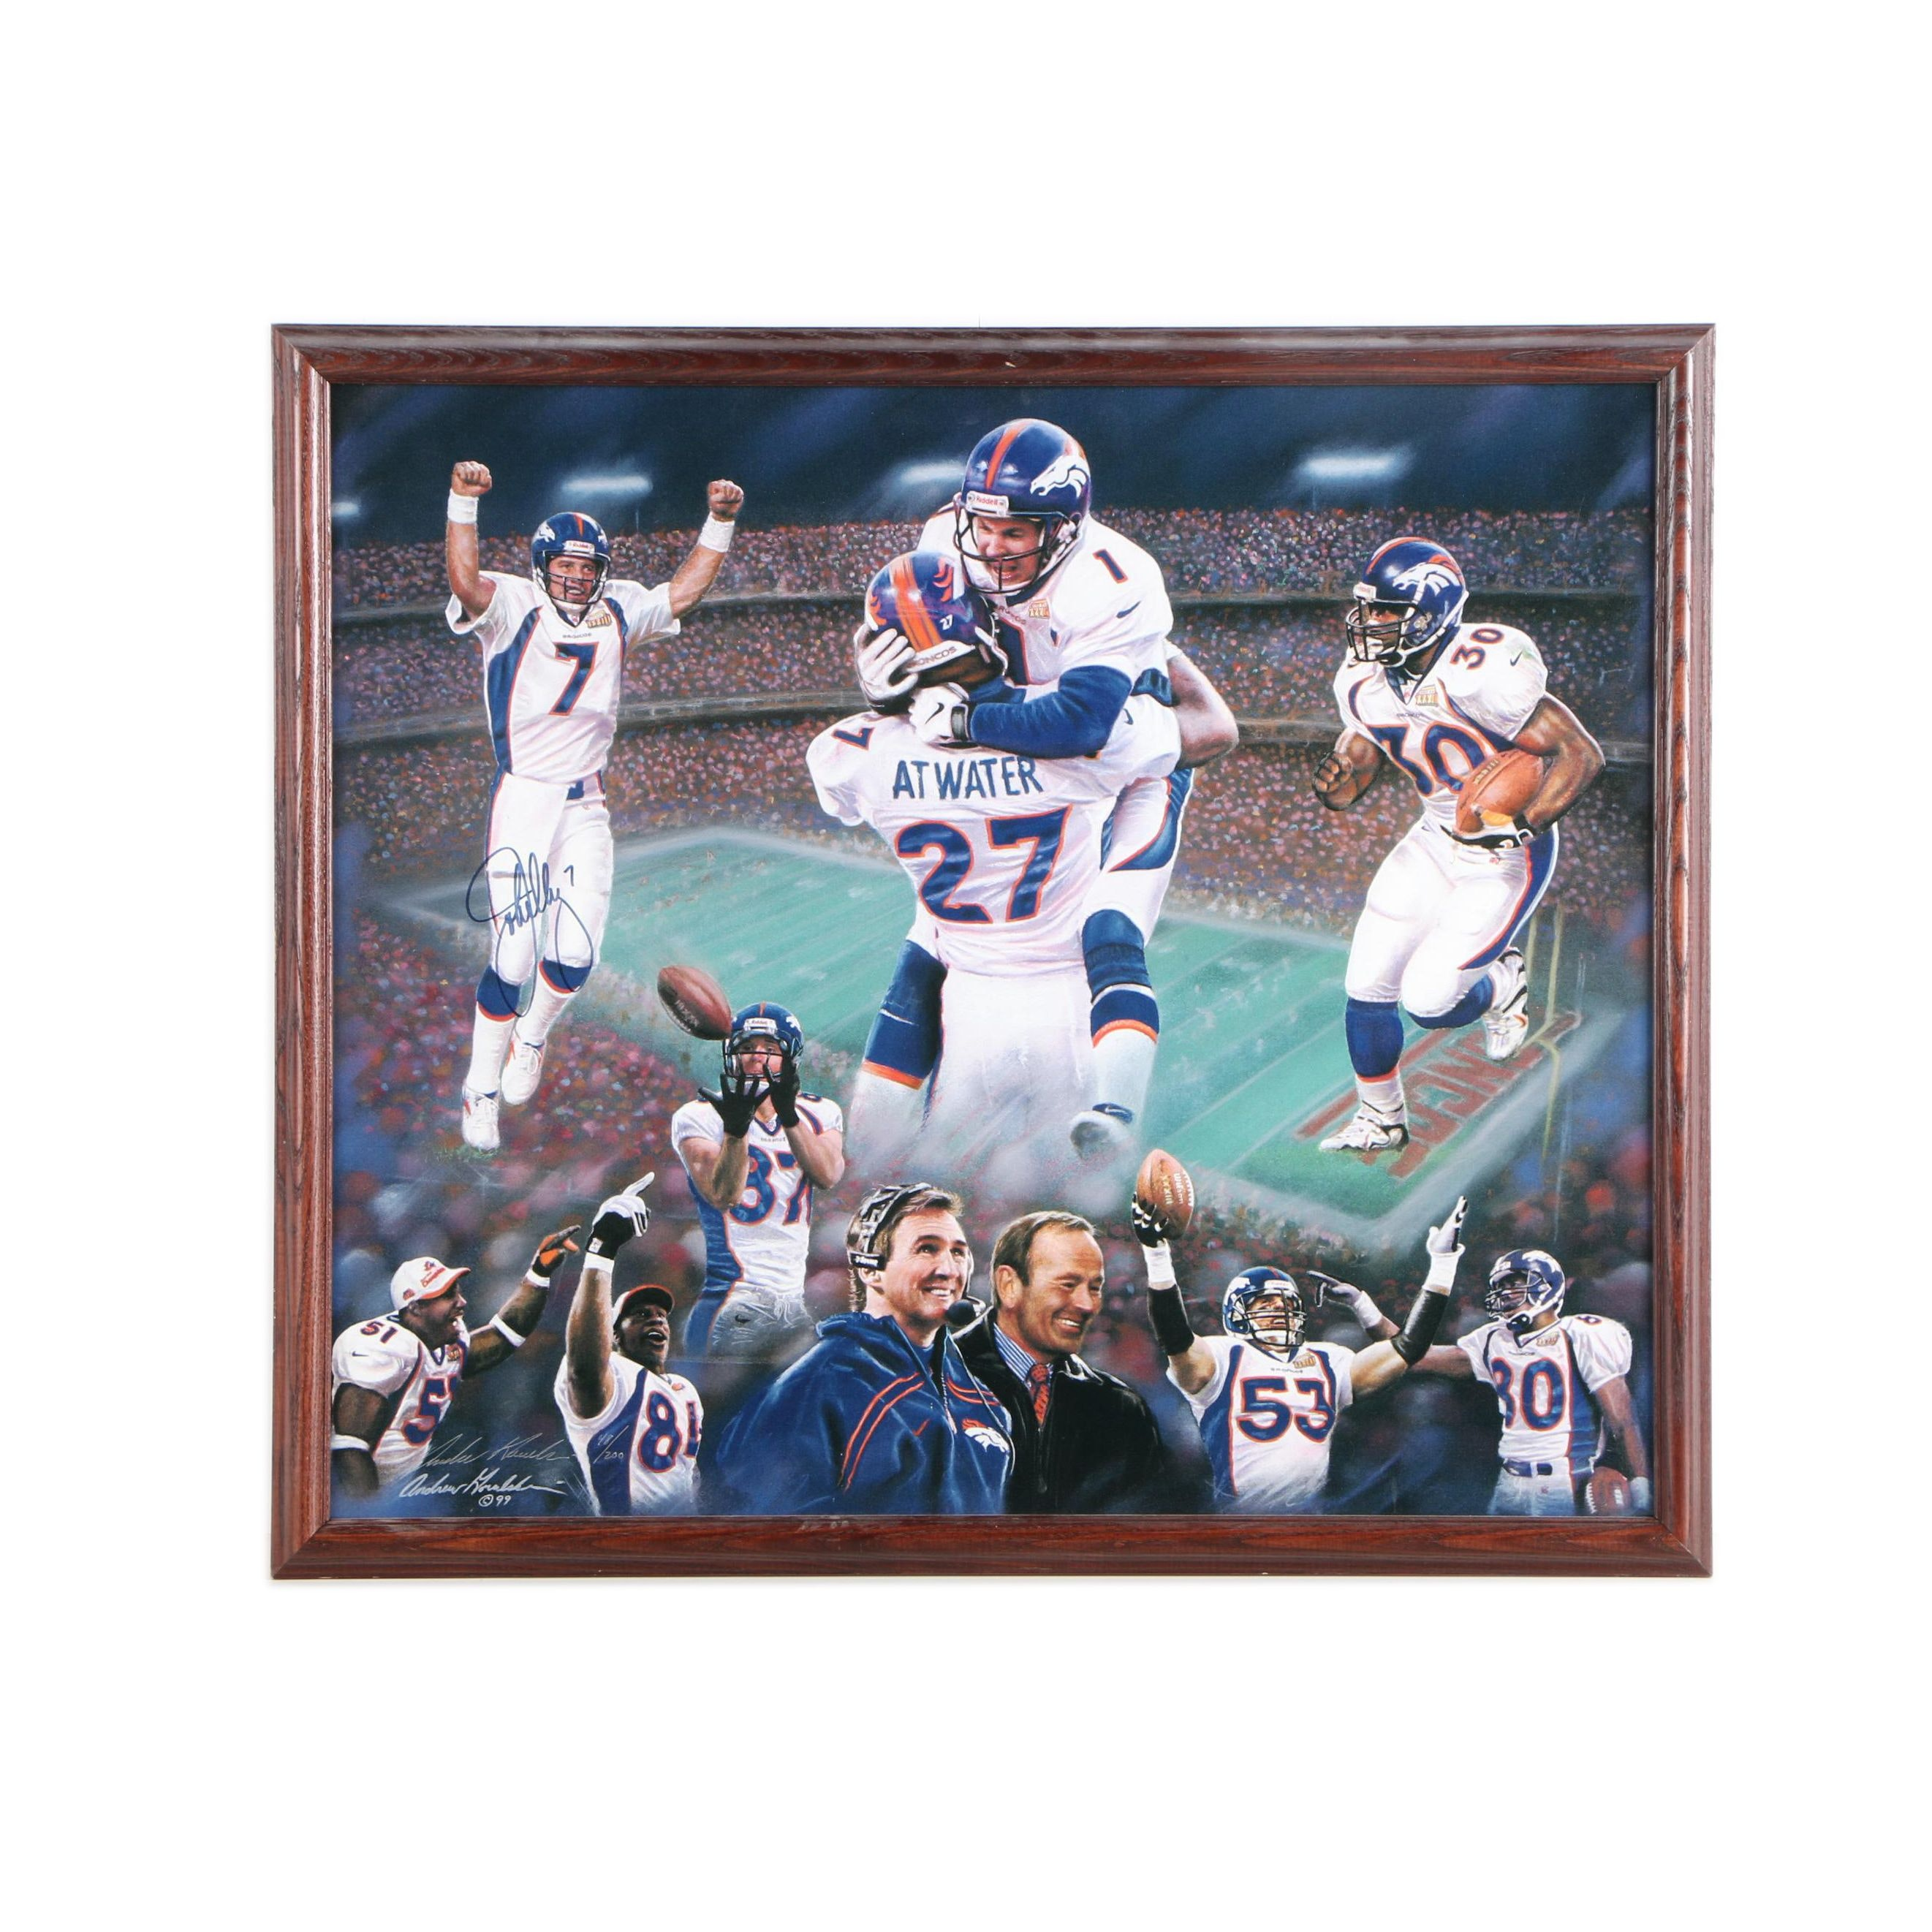 Signed Limited Edition Denver Broncos Giclee on Canvas Board